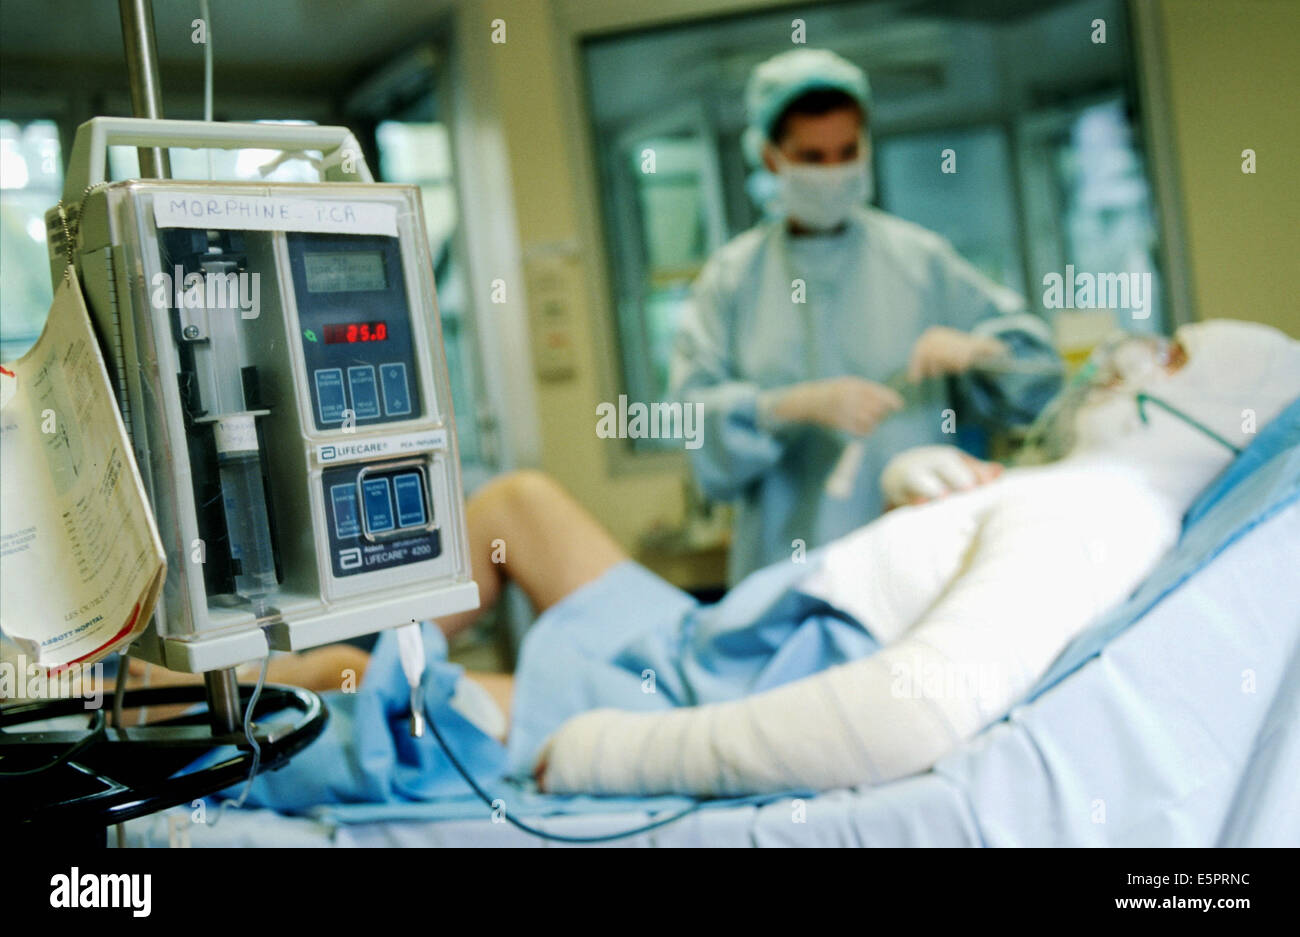 A severely burned patient manages pain treatment with a self-controlled morphin pump, Burn center, Military Percy - Stock Image